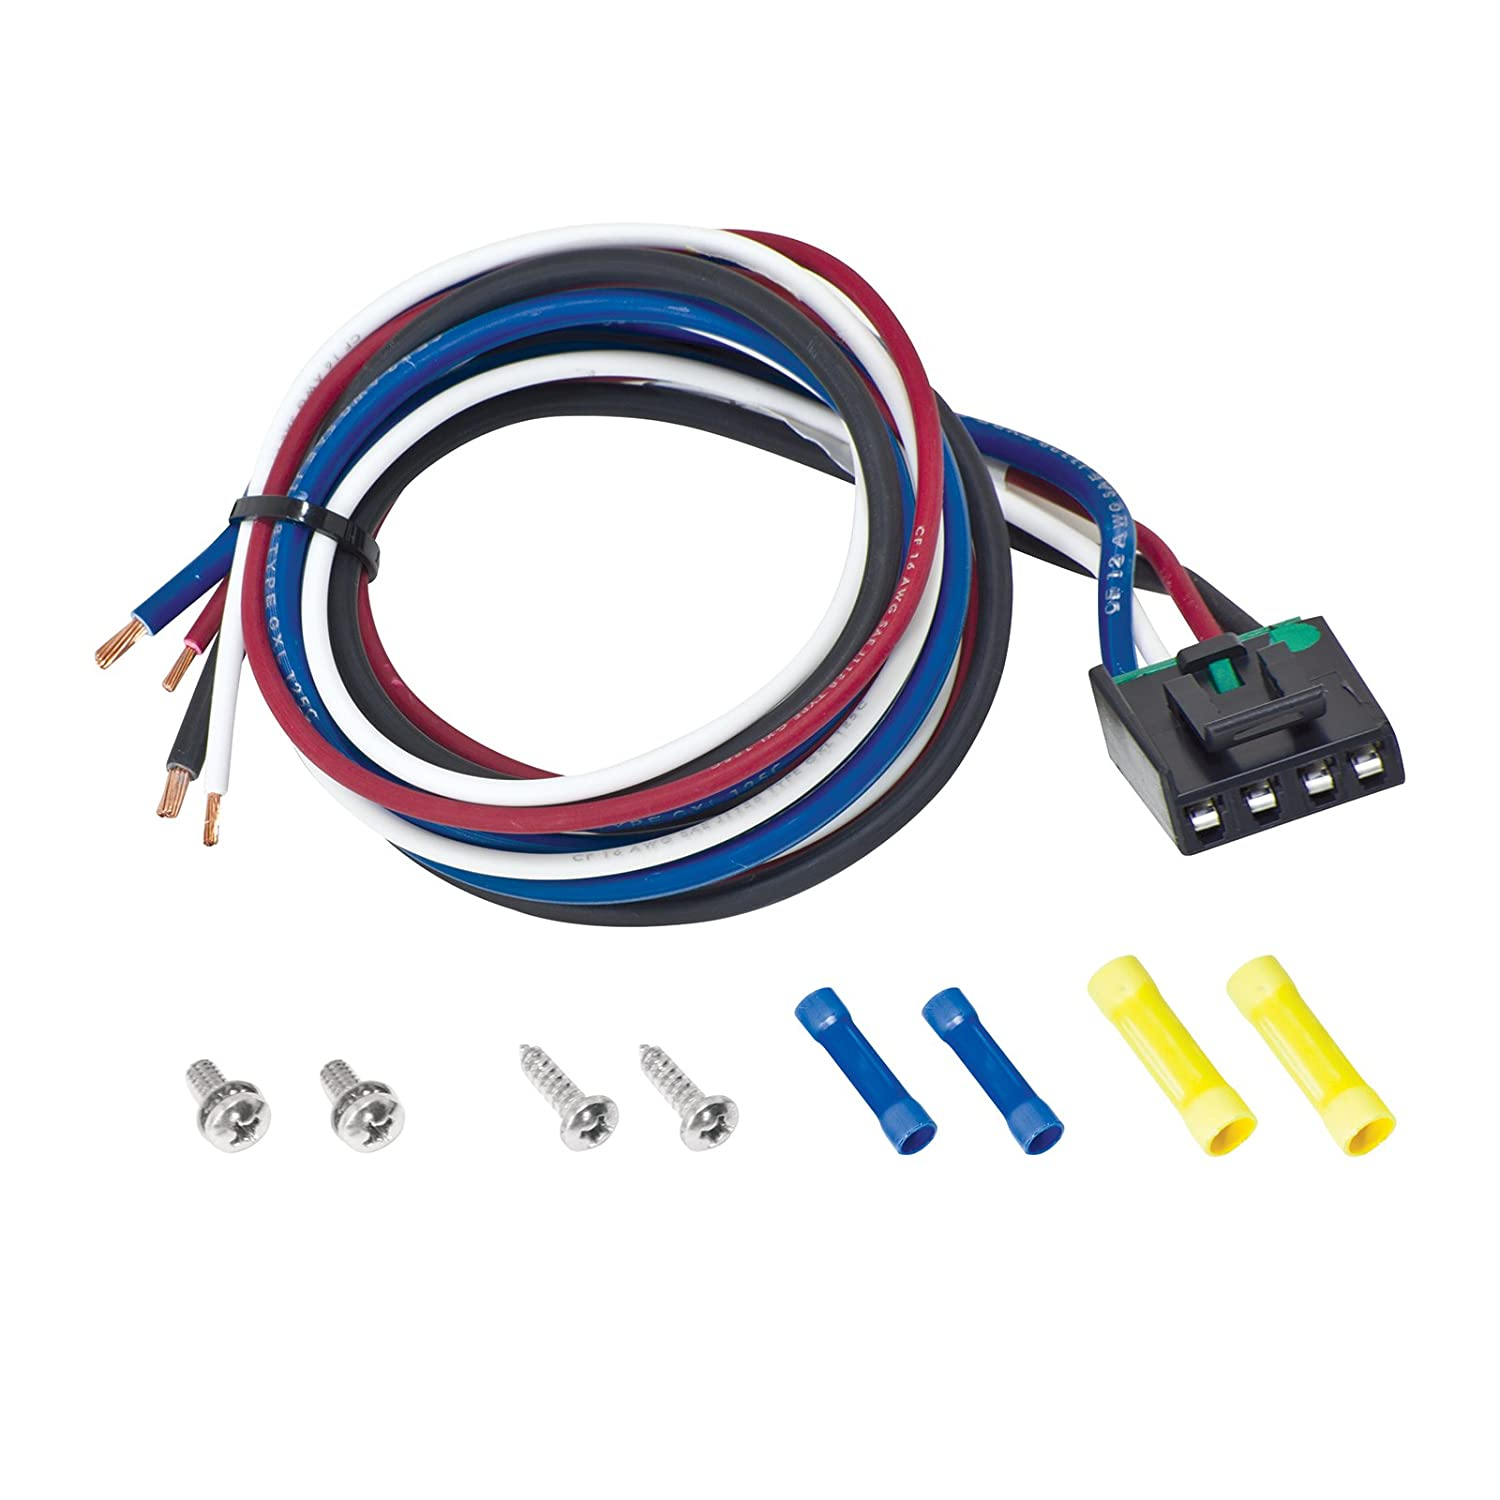 71jCJaf1RuL._SL1500_ amazon com tekonsha 7894 brake control pigtail harness kit Toyota Stereo Wiring Diagram at gsmportal.co